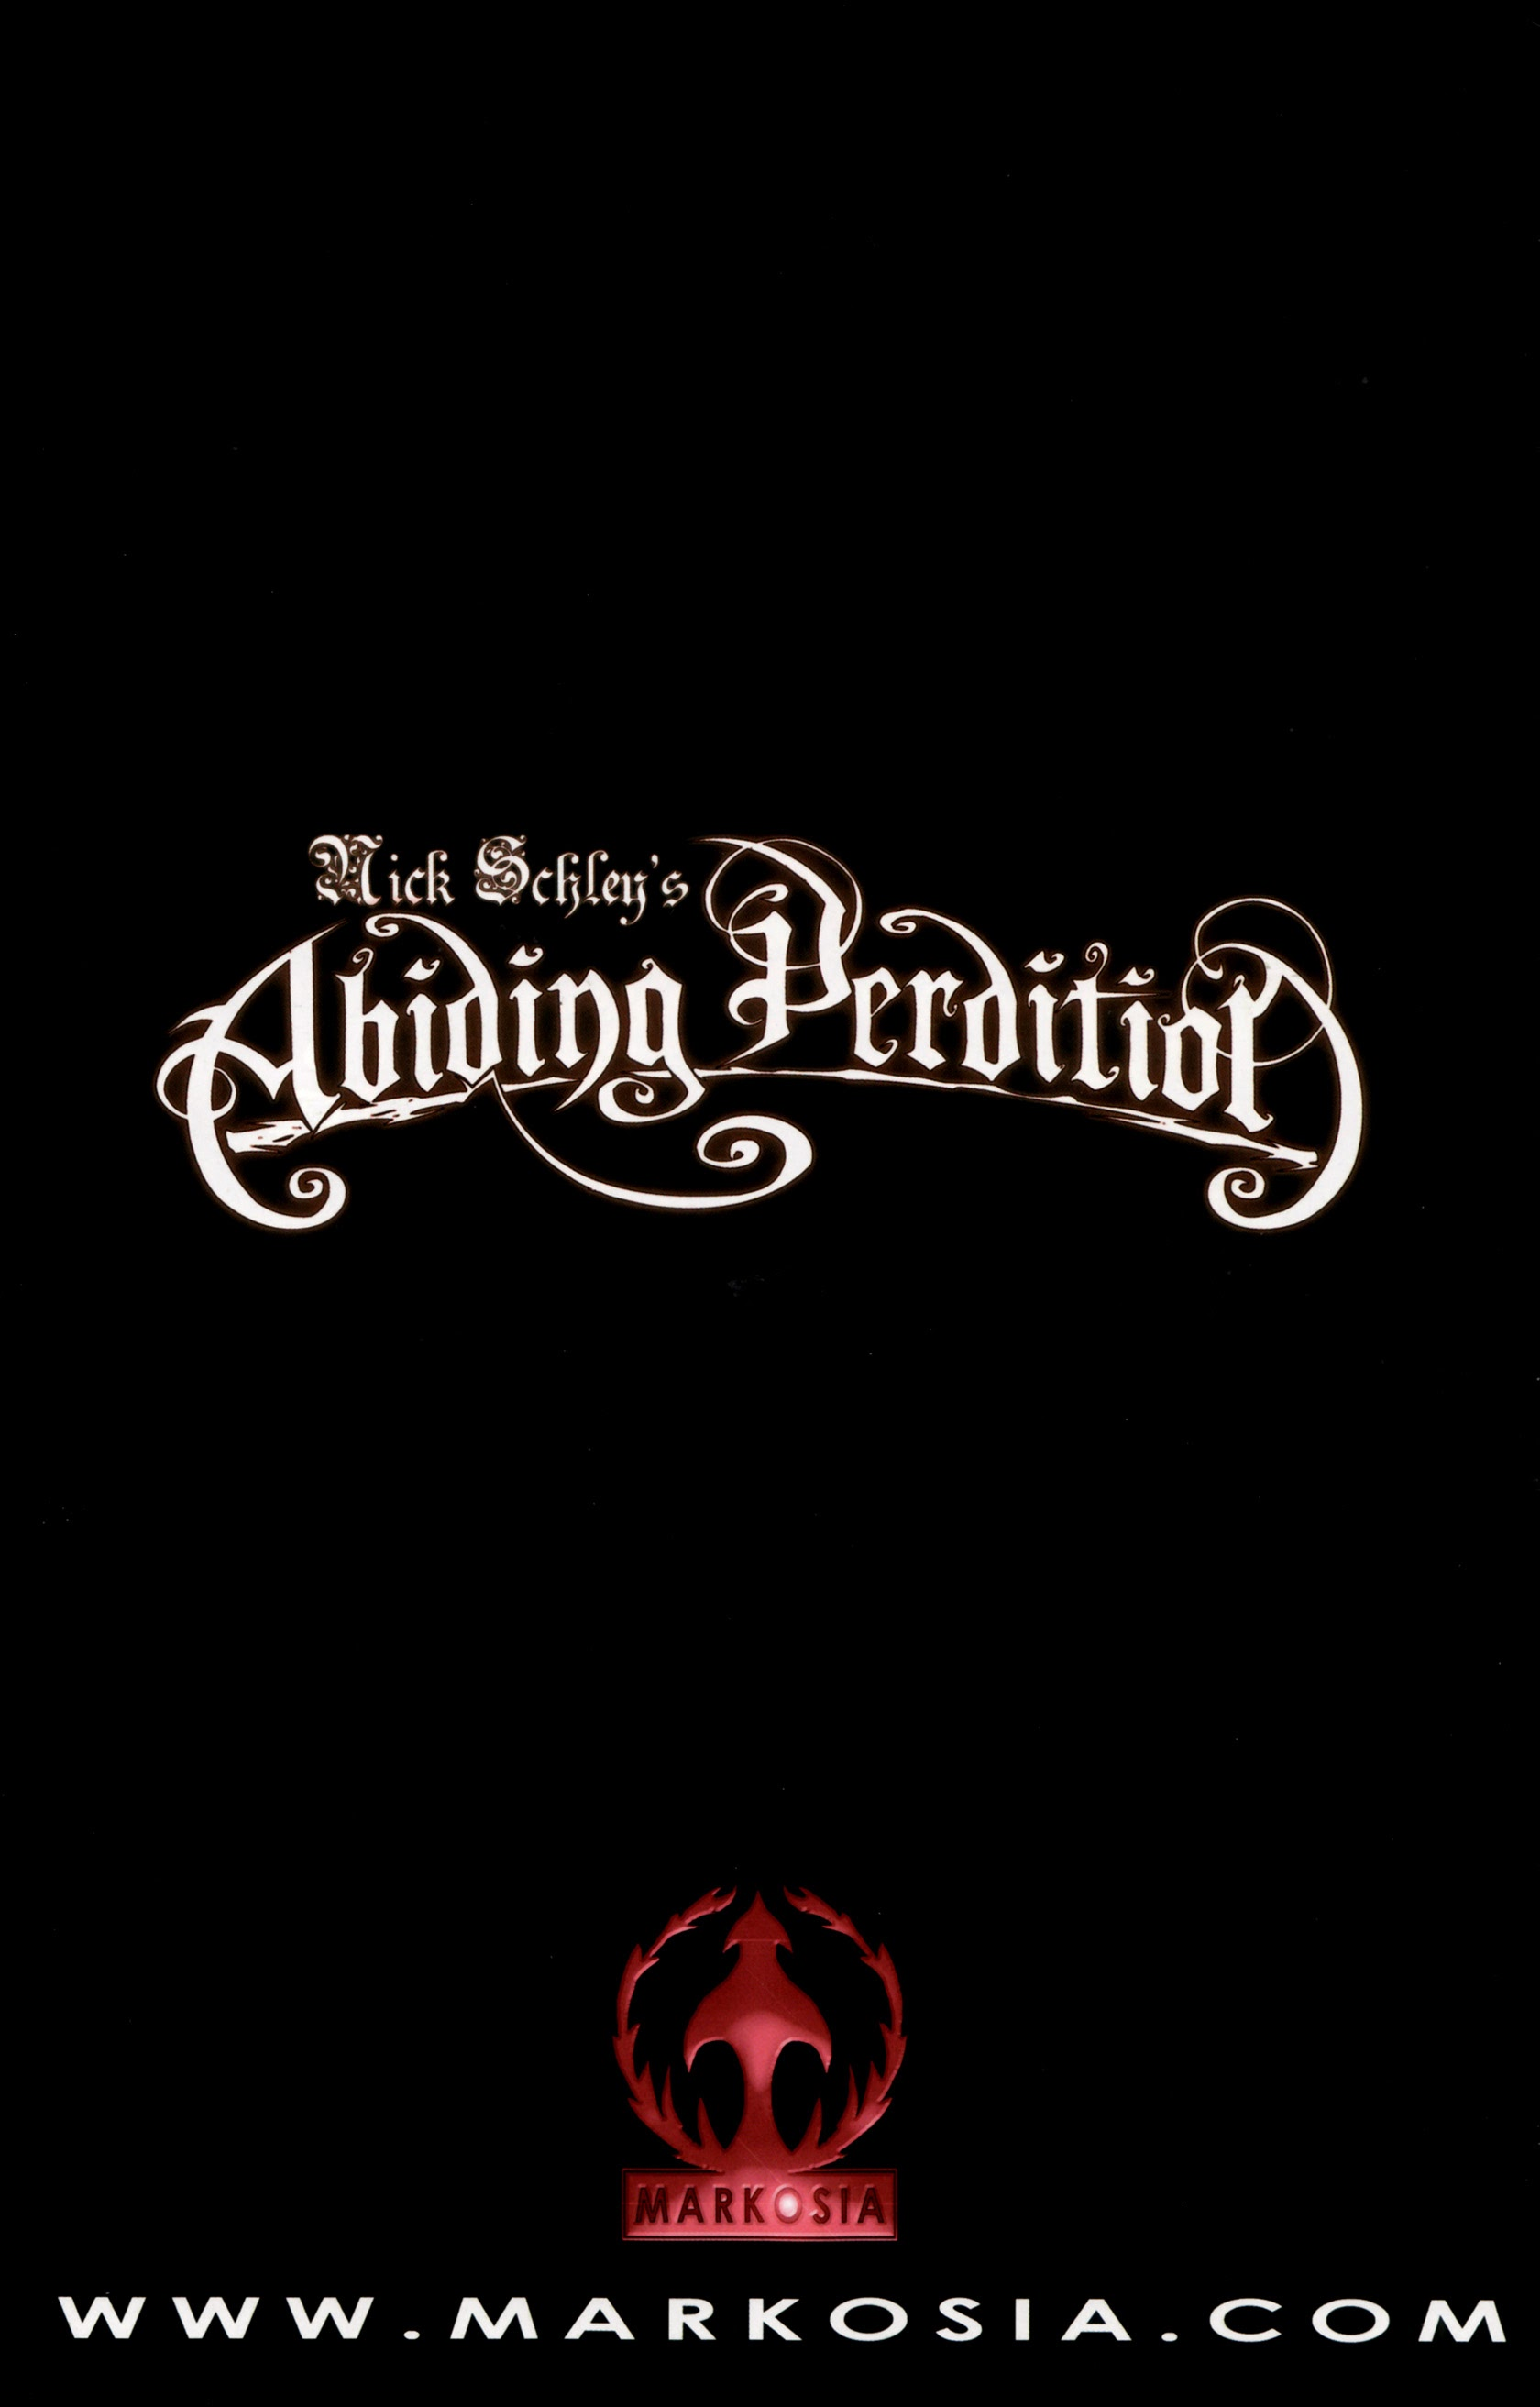 Read online Abiding Perdition comic -  Issue #1 - 37